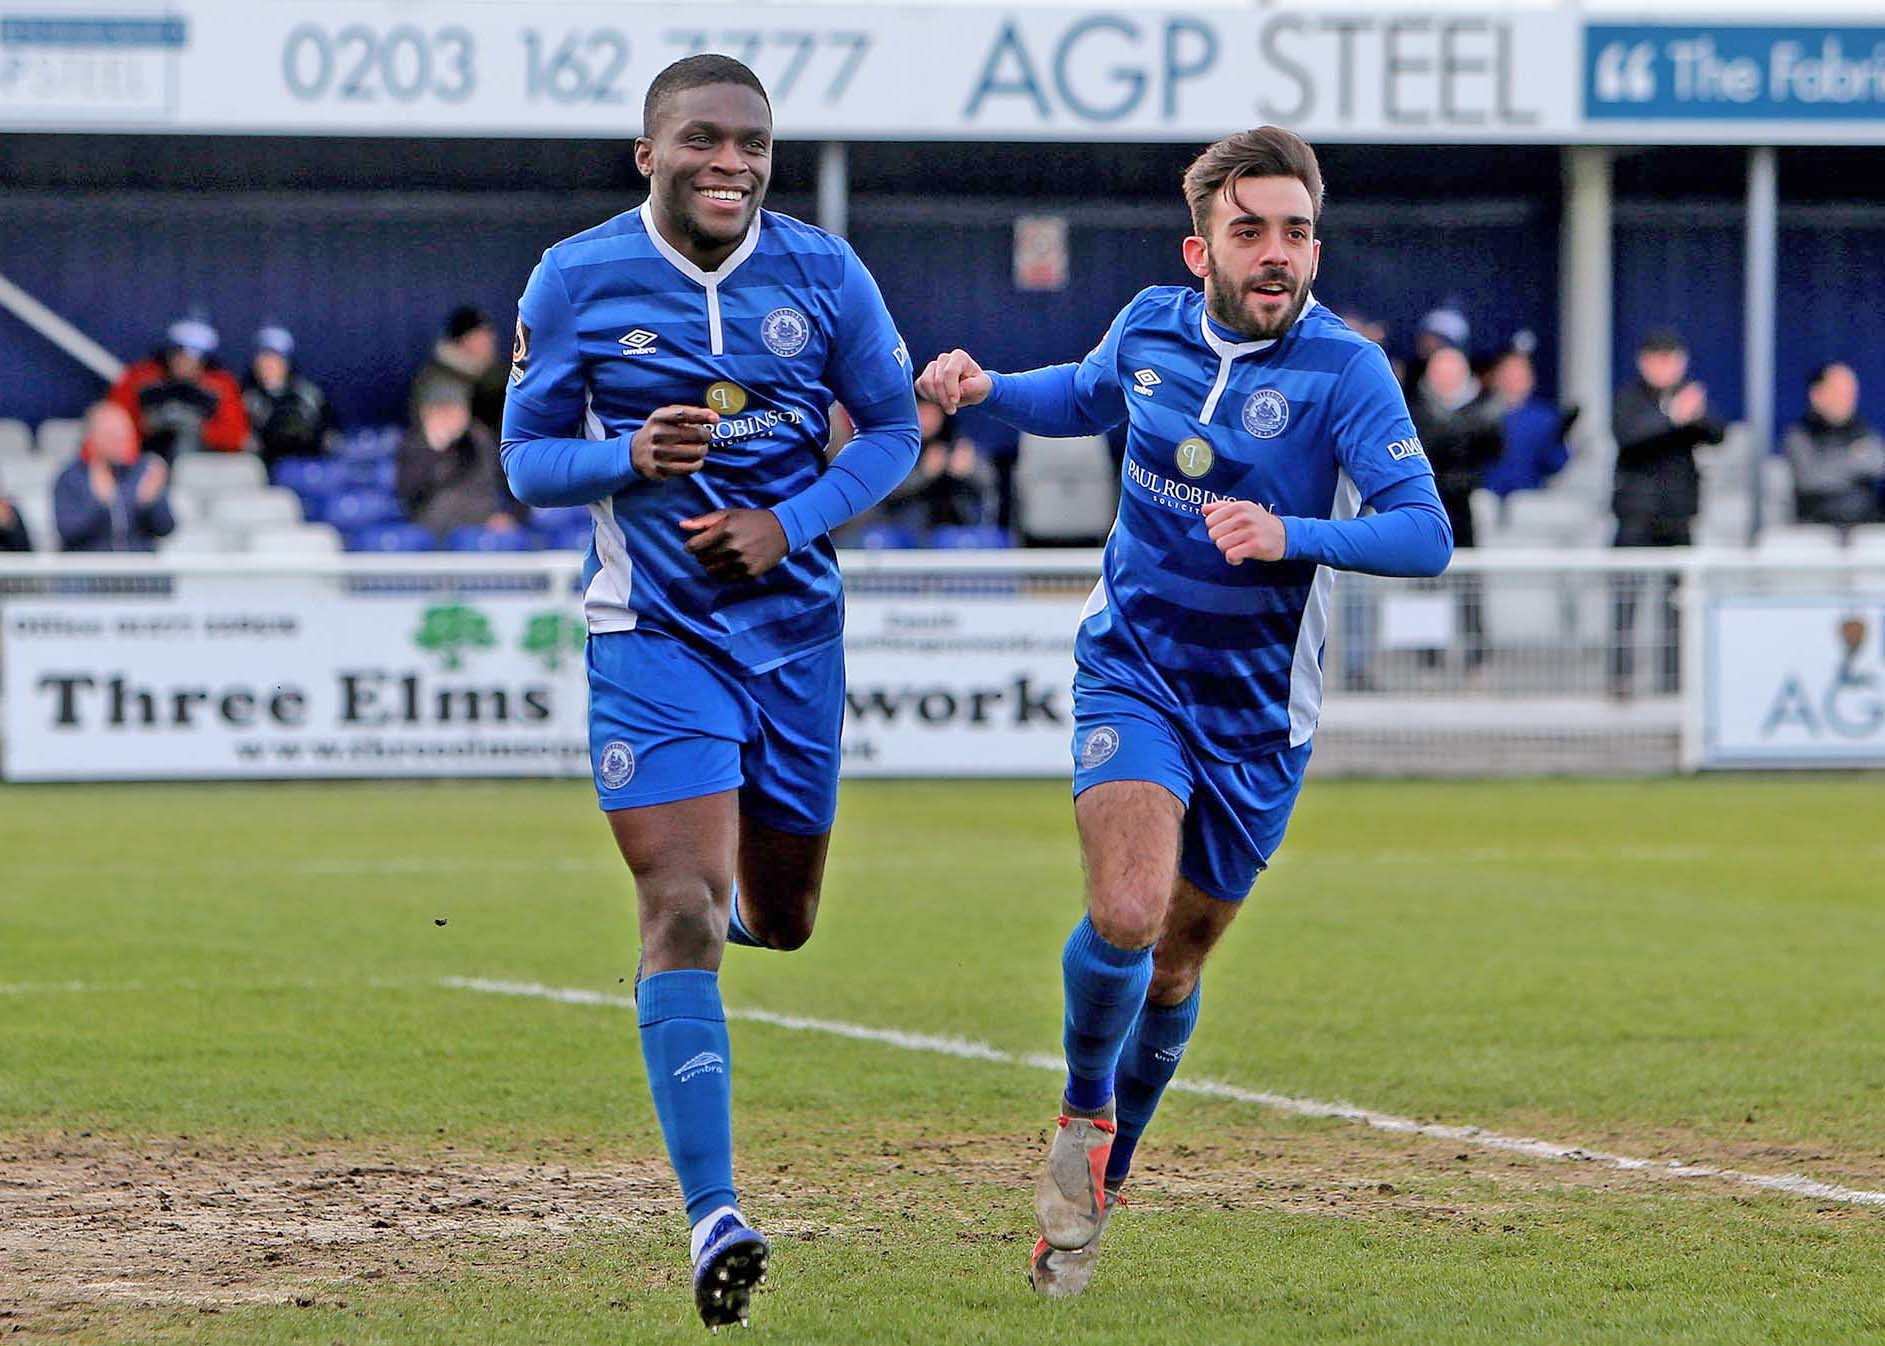 At the double - Moses Emmanuel scored twice for Billericay Town